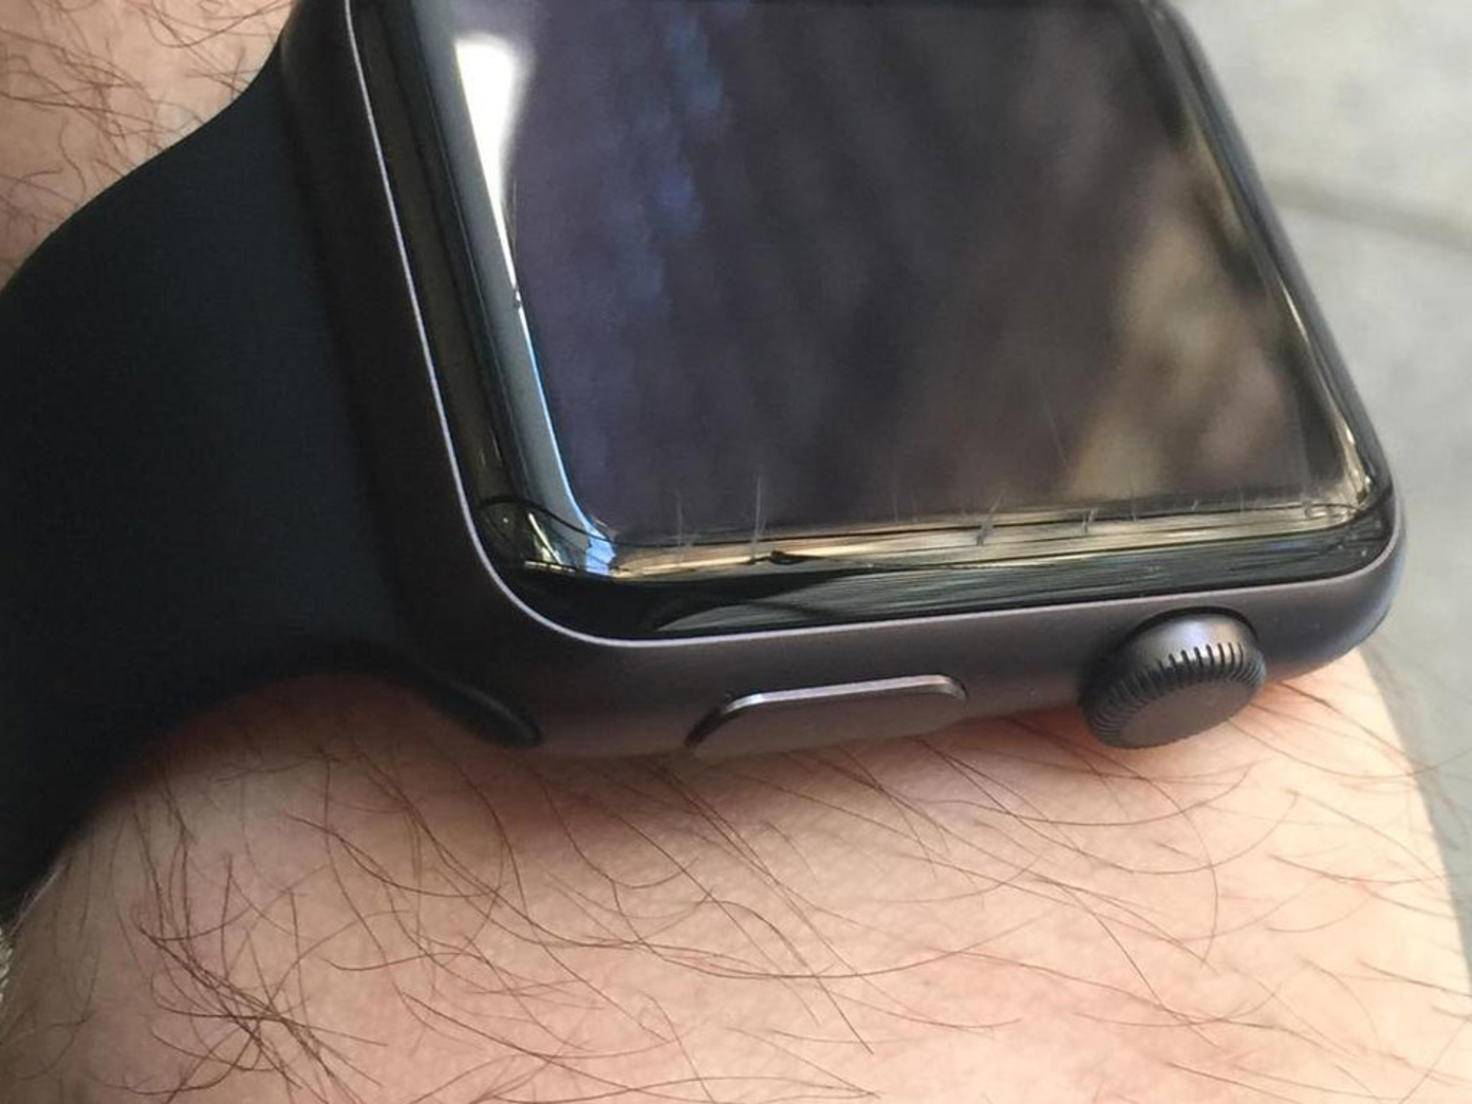 Kaputte Apple Watch